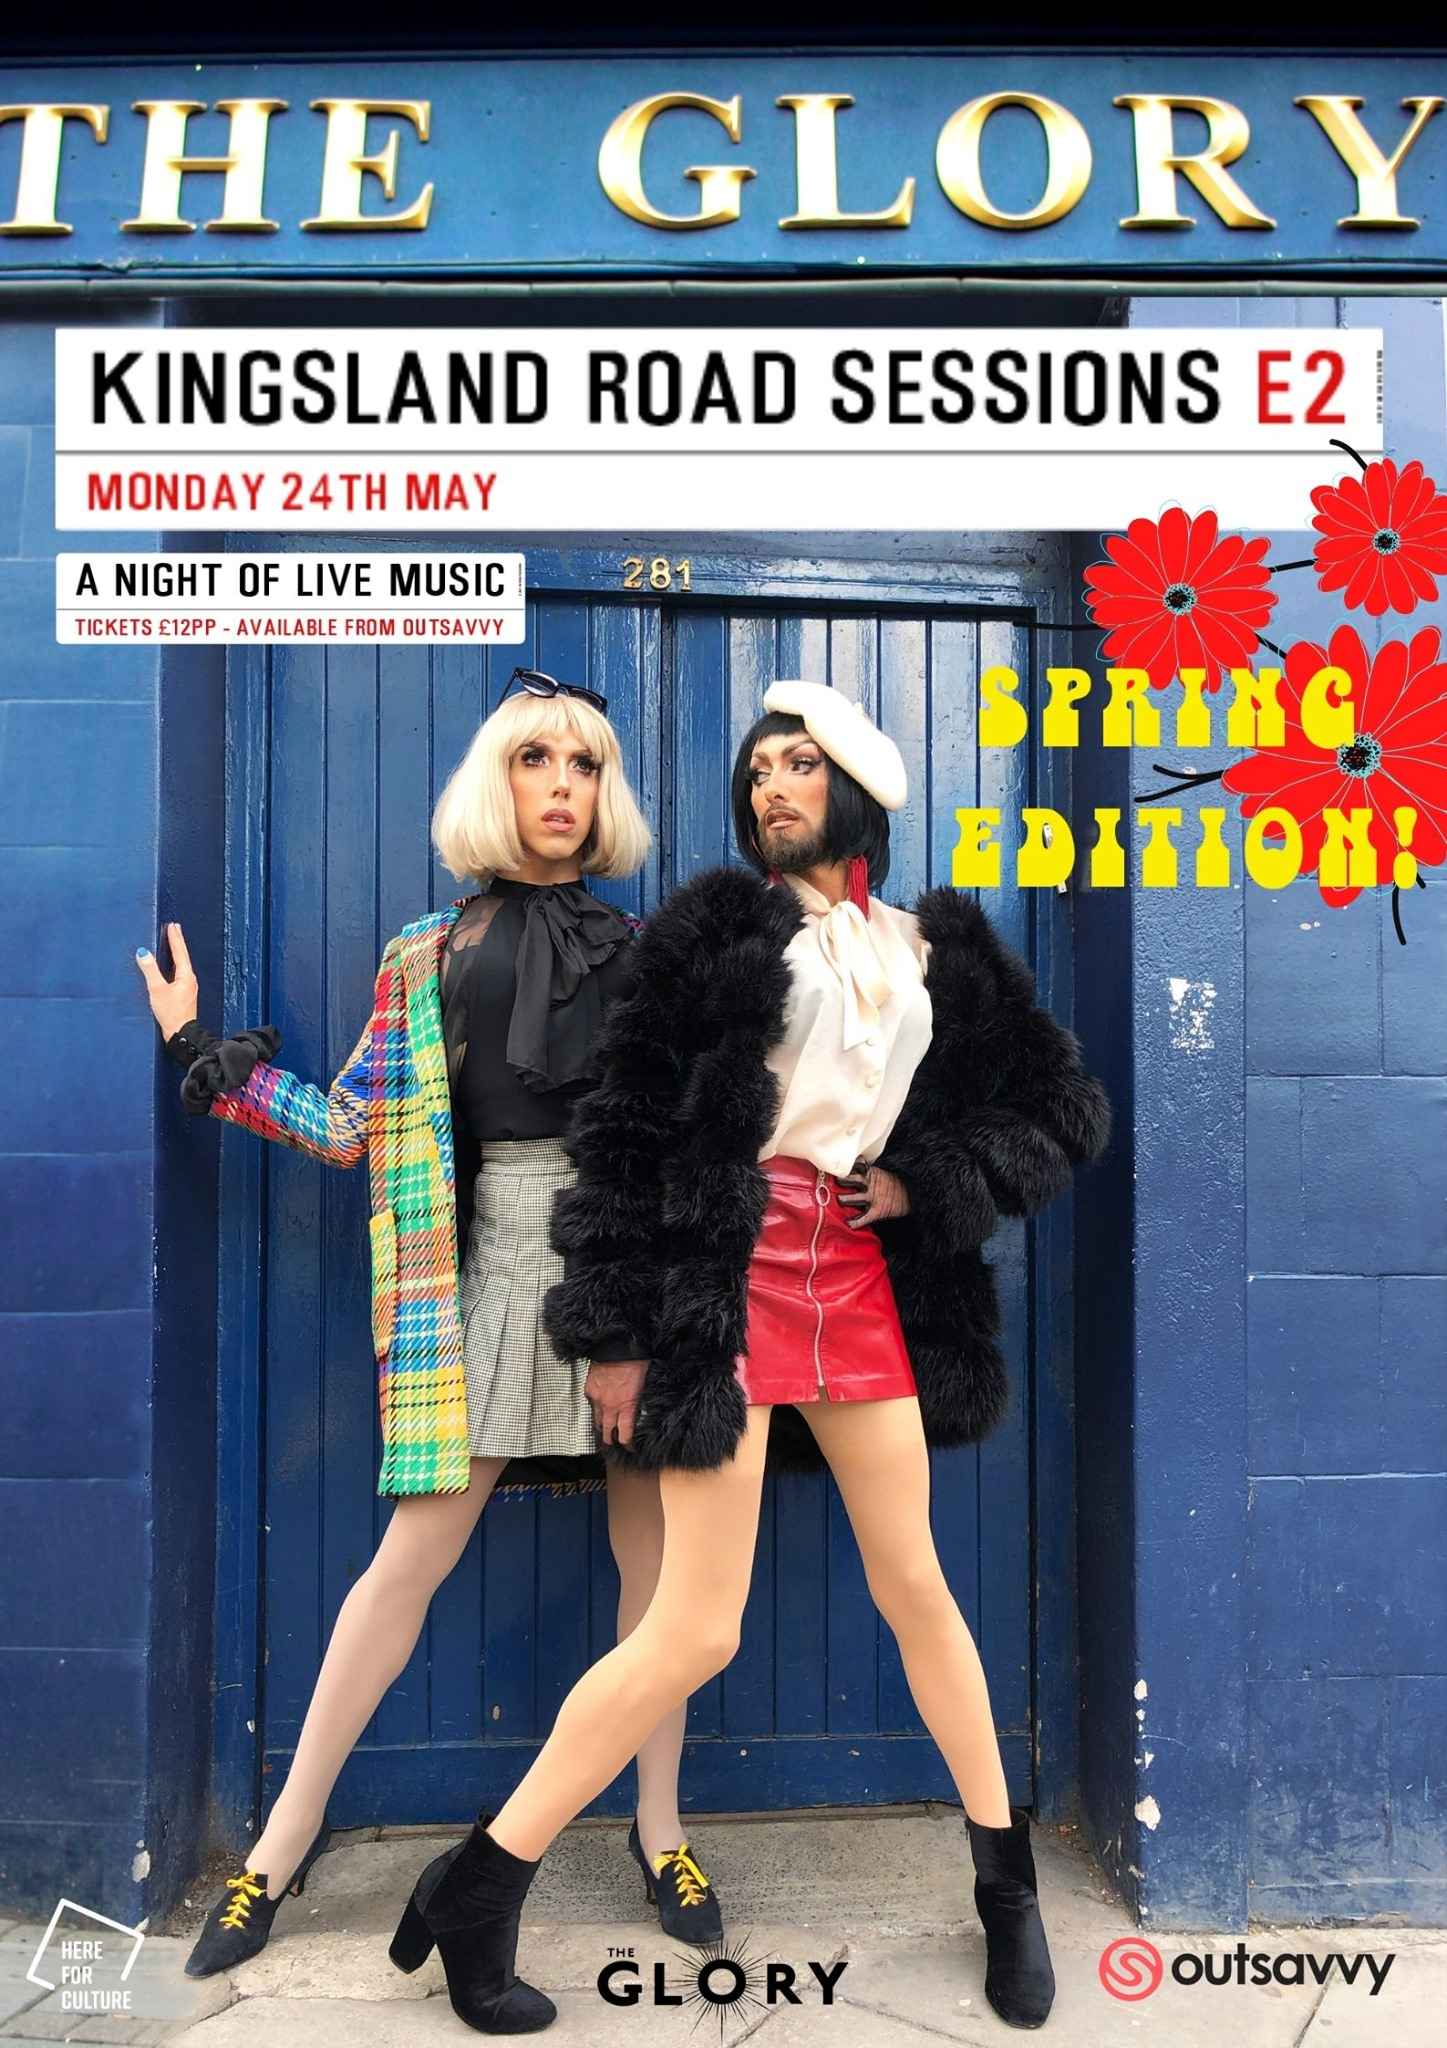 Kingsland Road Sessions – Spring Edition!